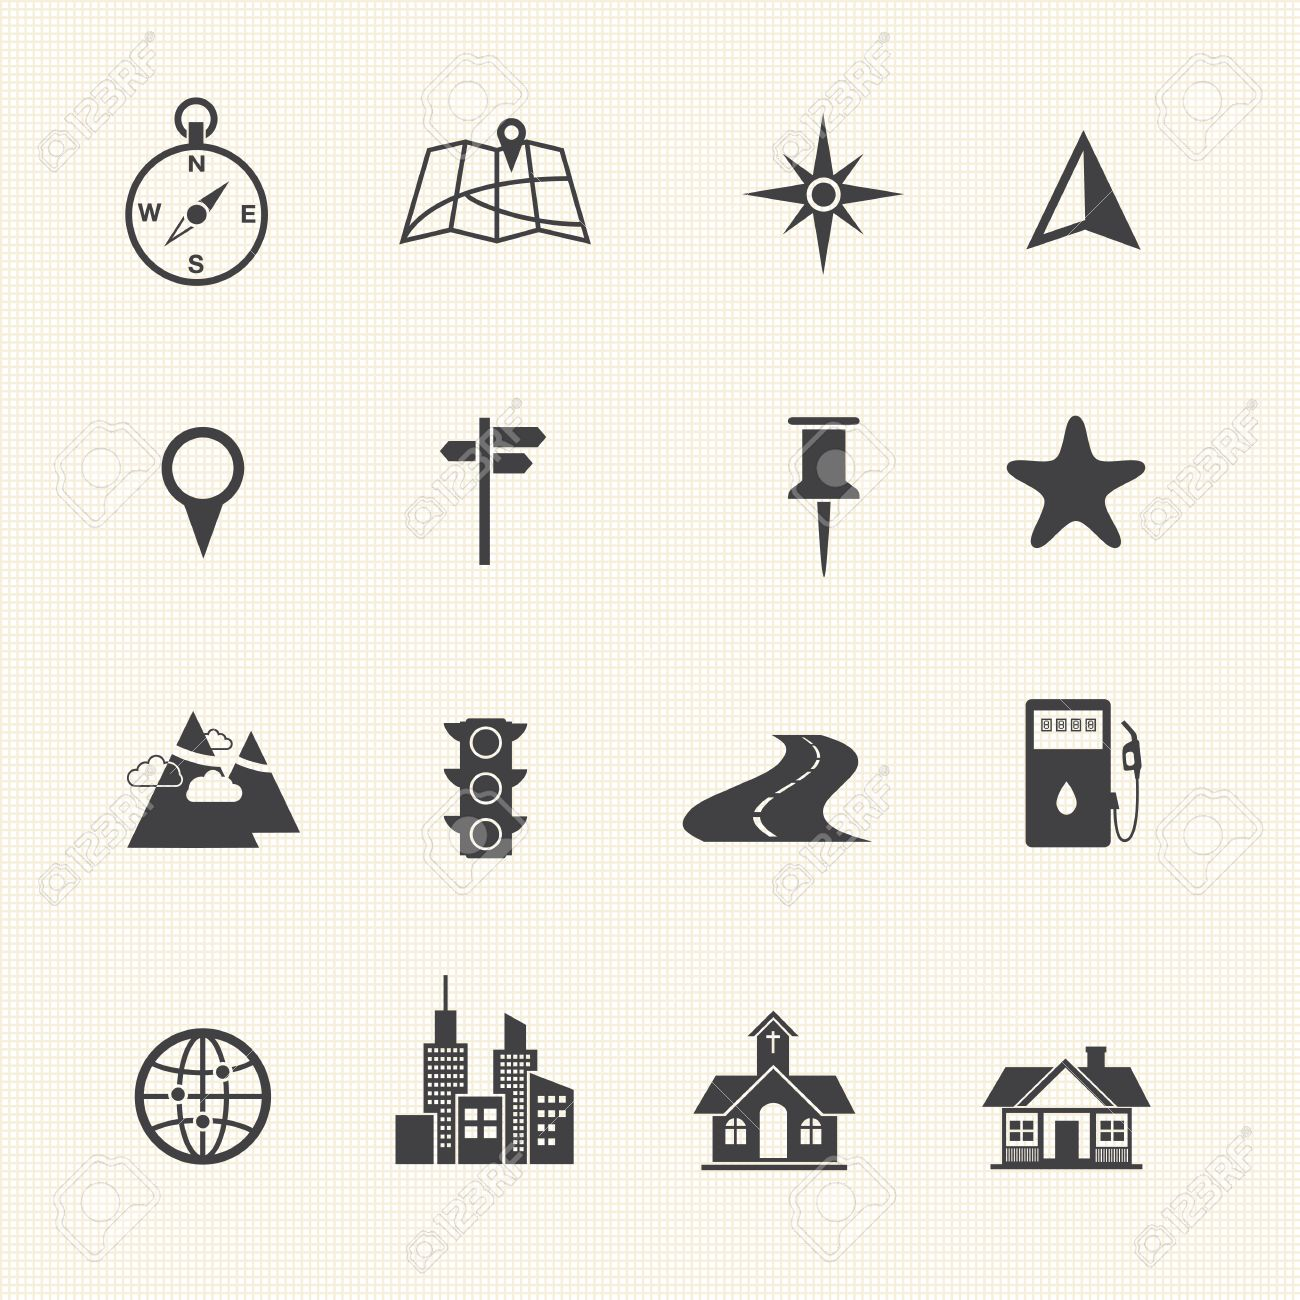 Map Icons And Location Icons Royalty Free Cliparts, Vectors, And ...